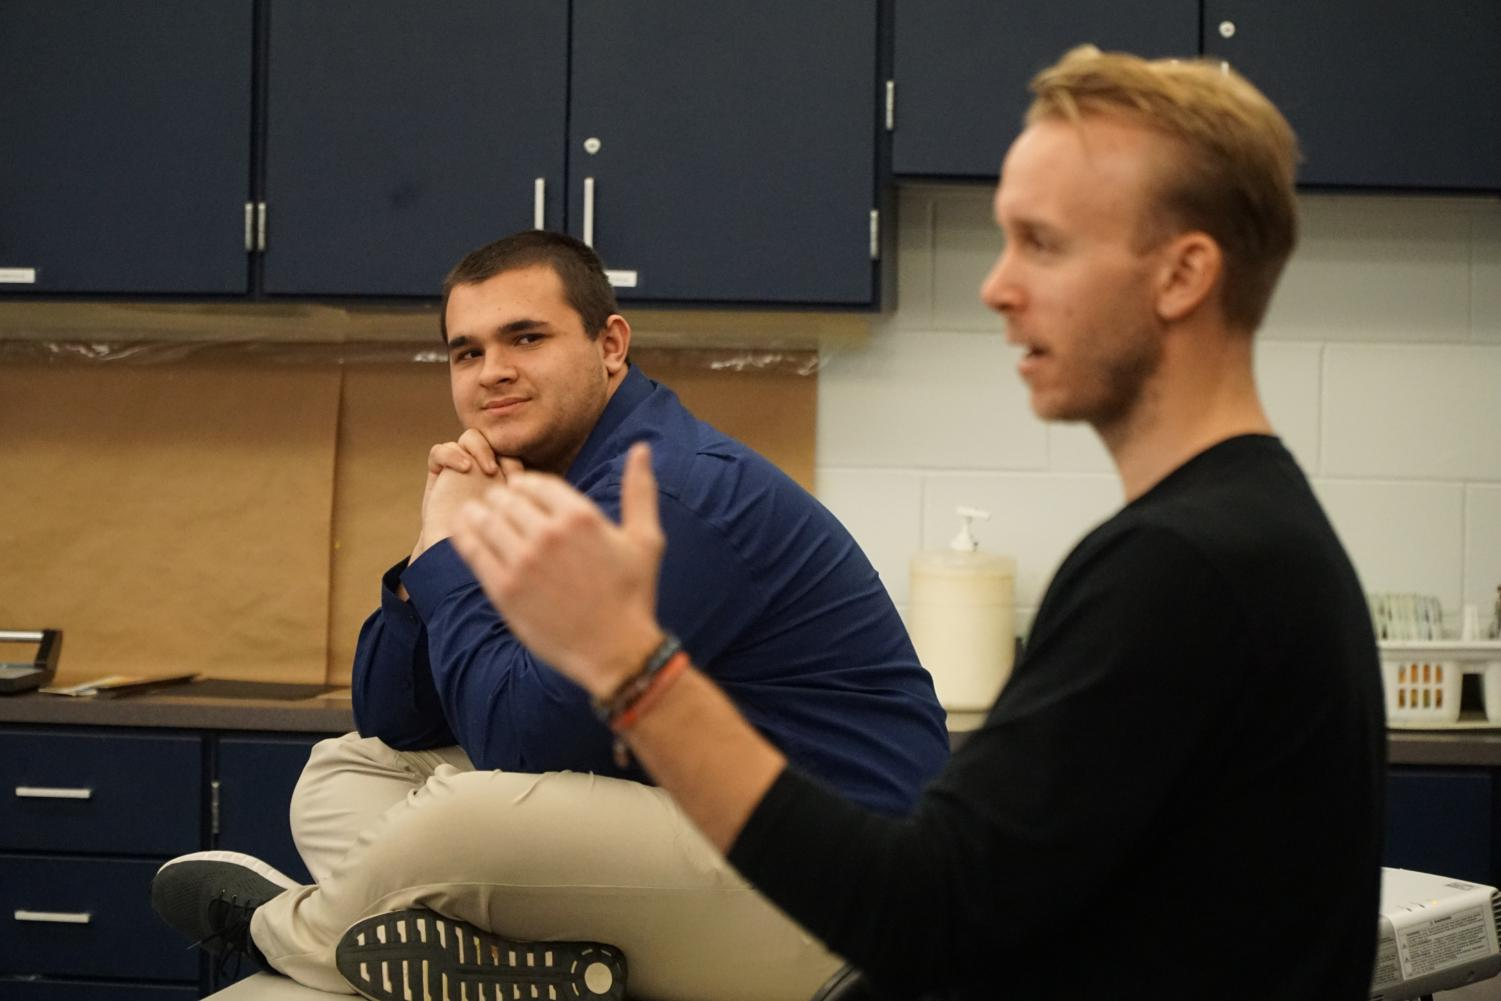 Junior RJ Franzen of Allentown listens to a speaker from Goodsports USA at Career Day.